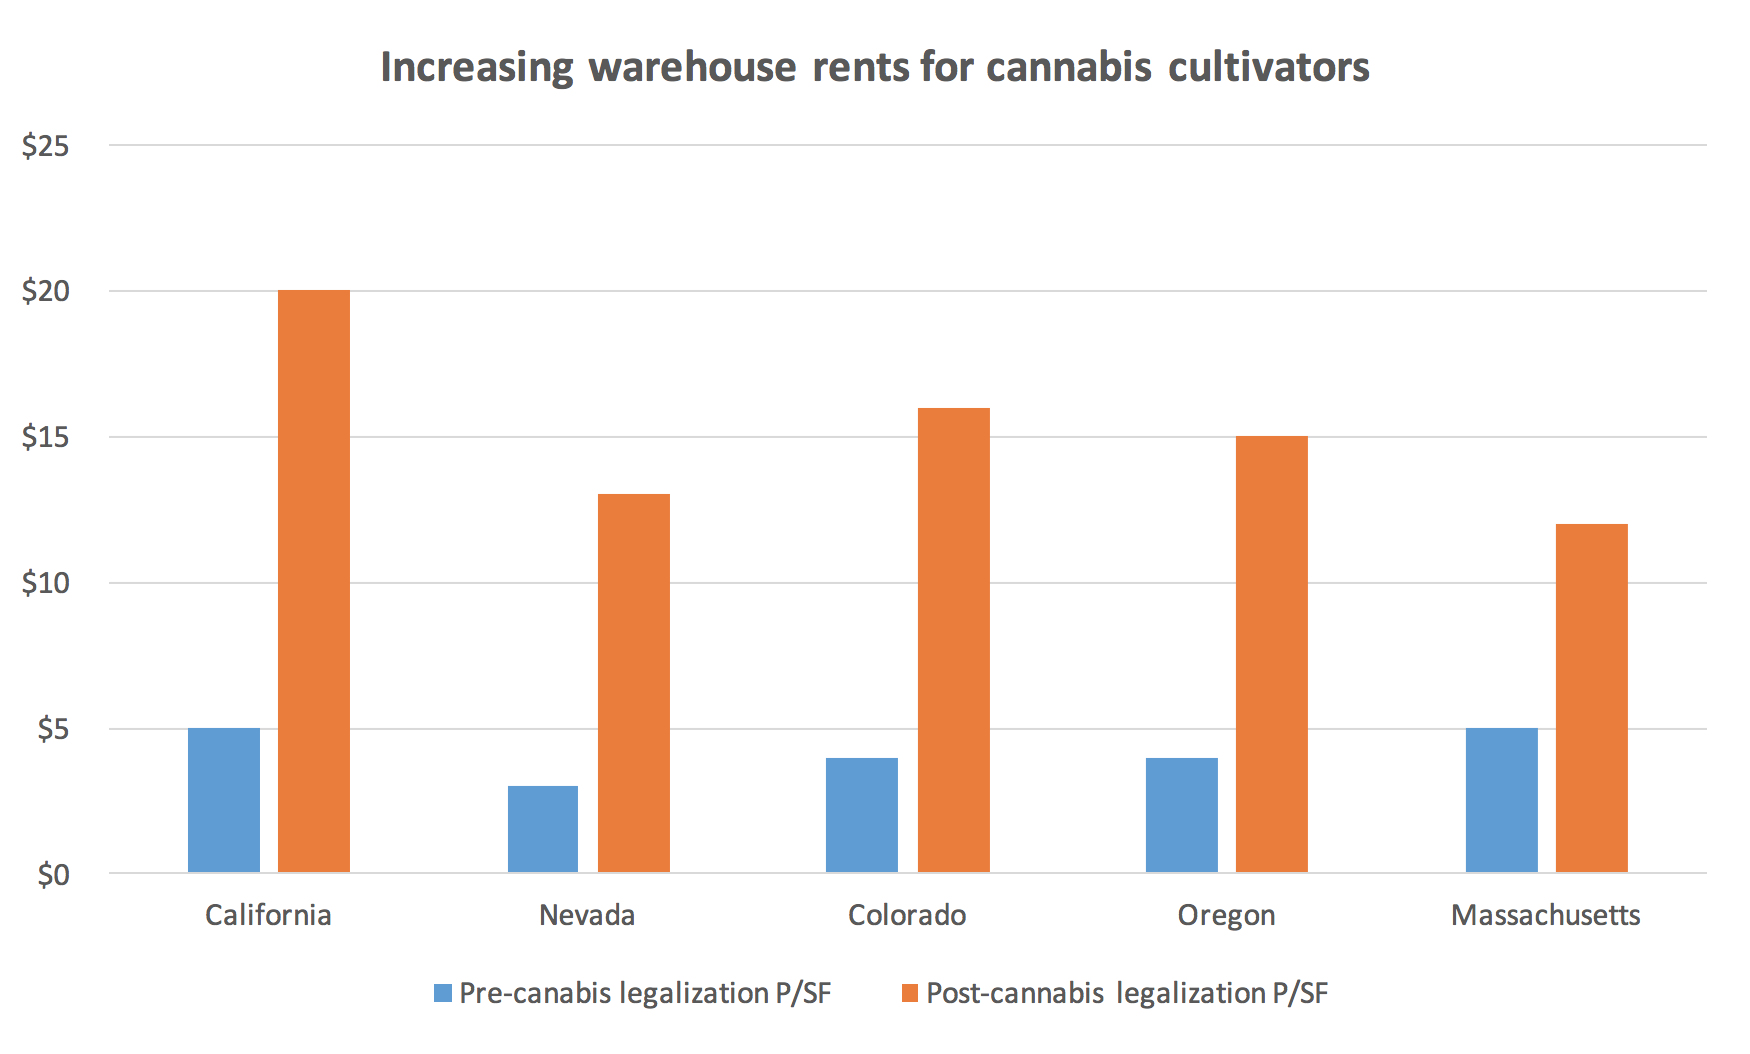 Increasing Warehouse Rents for Cannabis Cultivators